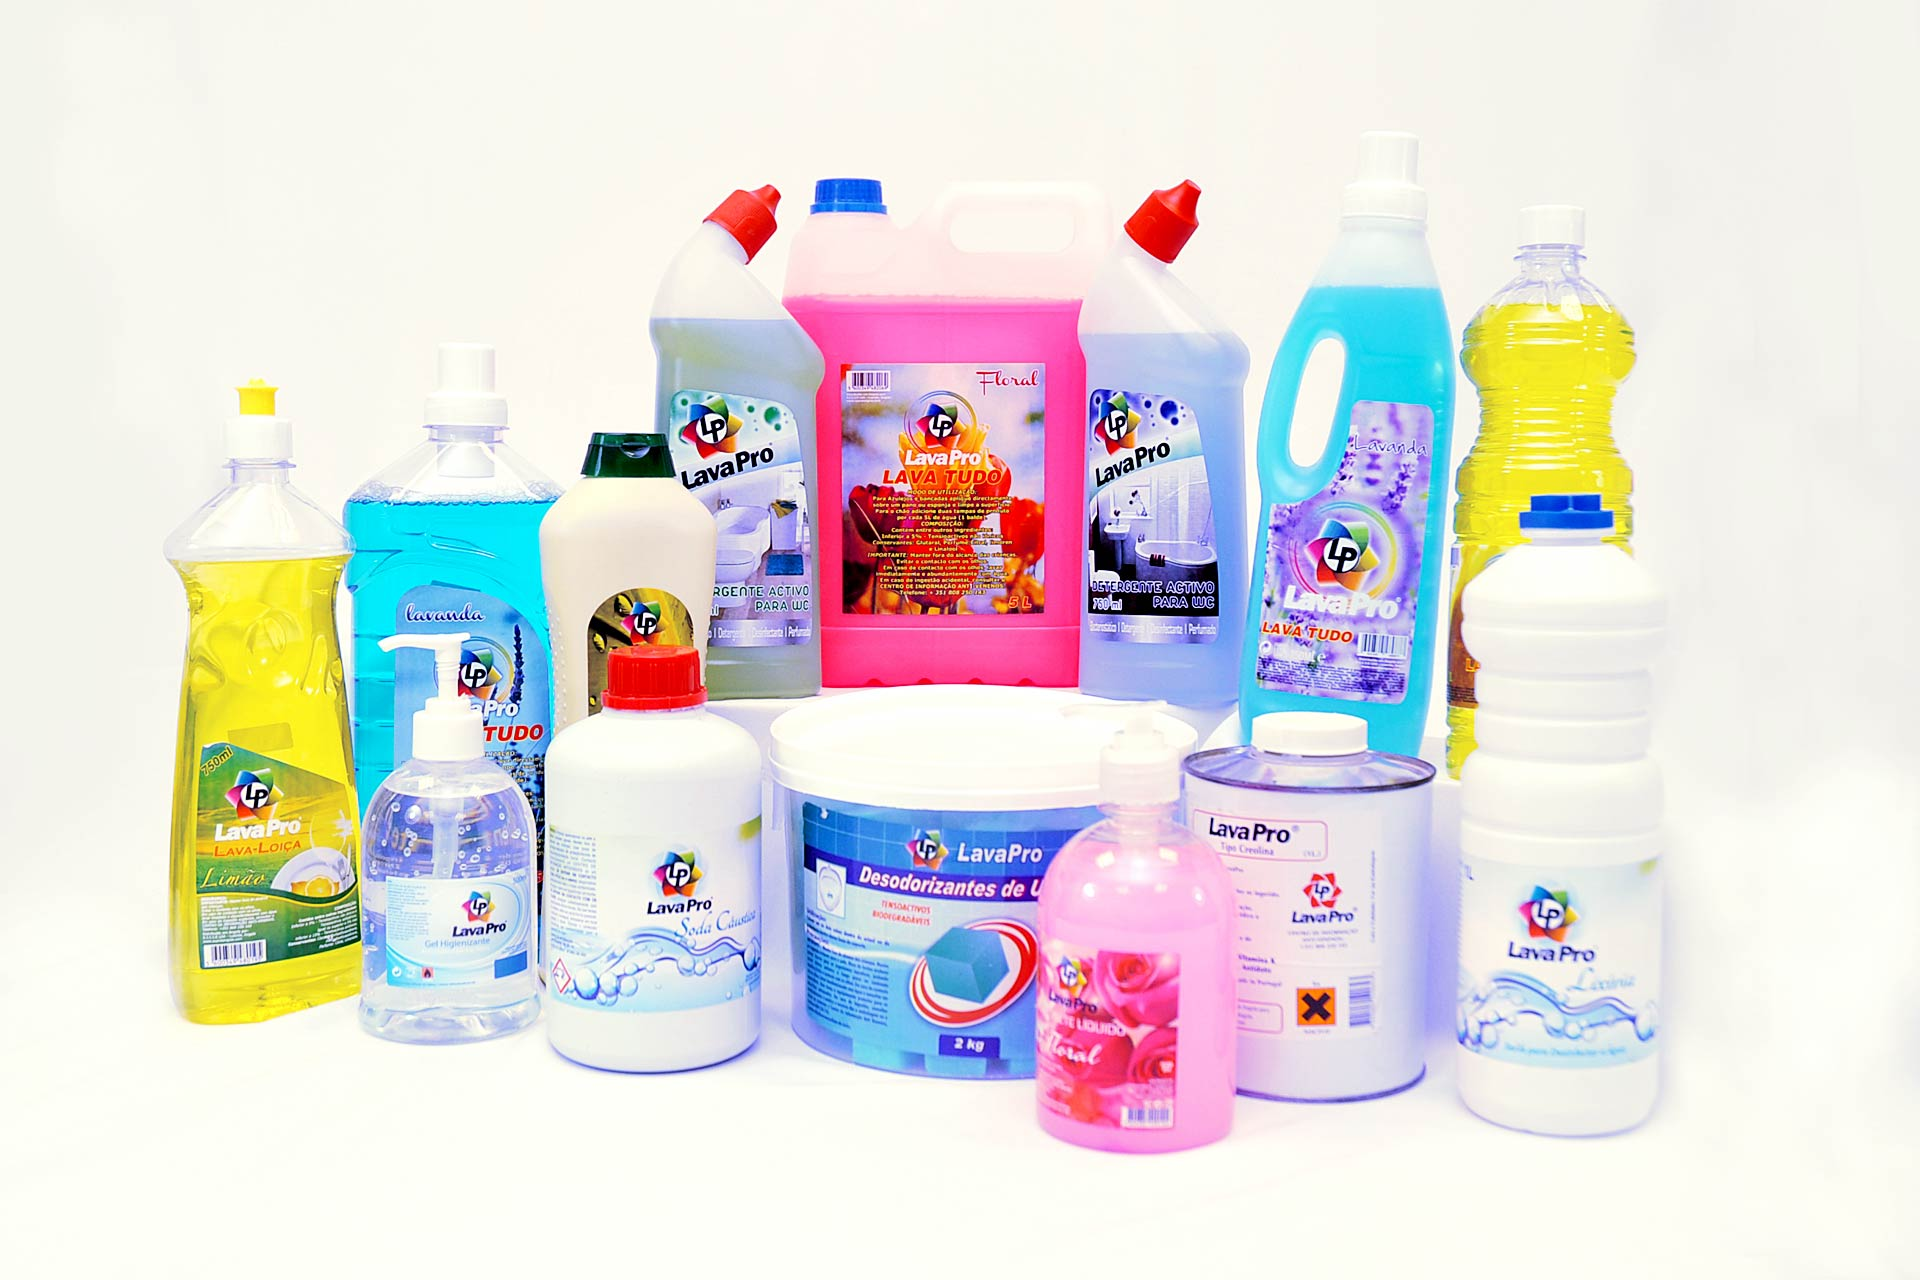 detergents To understand what is needed to achieve effective cleaning, it is helpful to have a basic knowledge of soap and detergent chemistry water, the liquid commonly used for cleaning, has a property called surface tension.